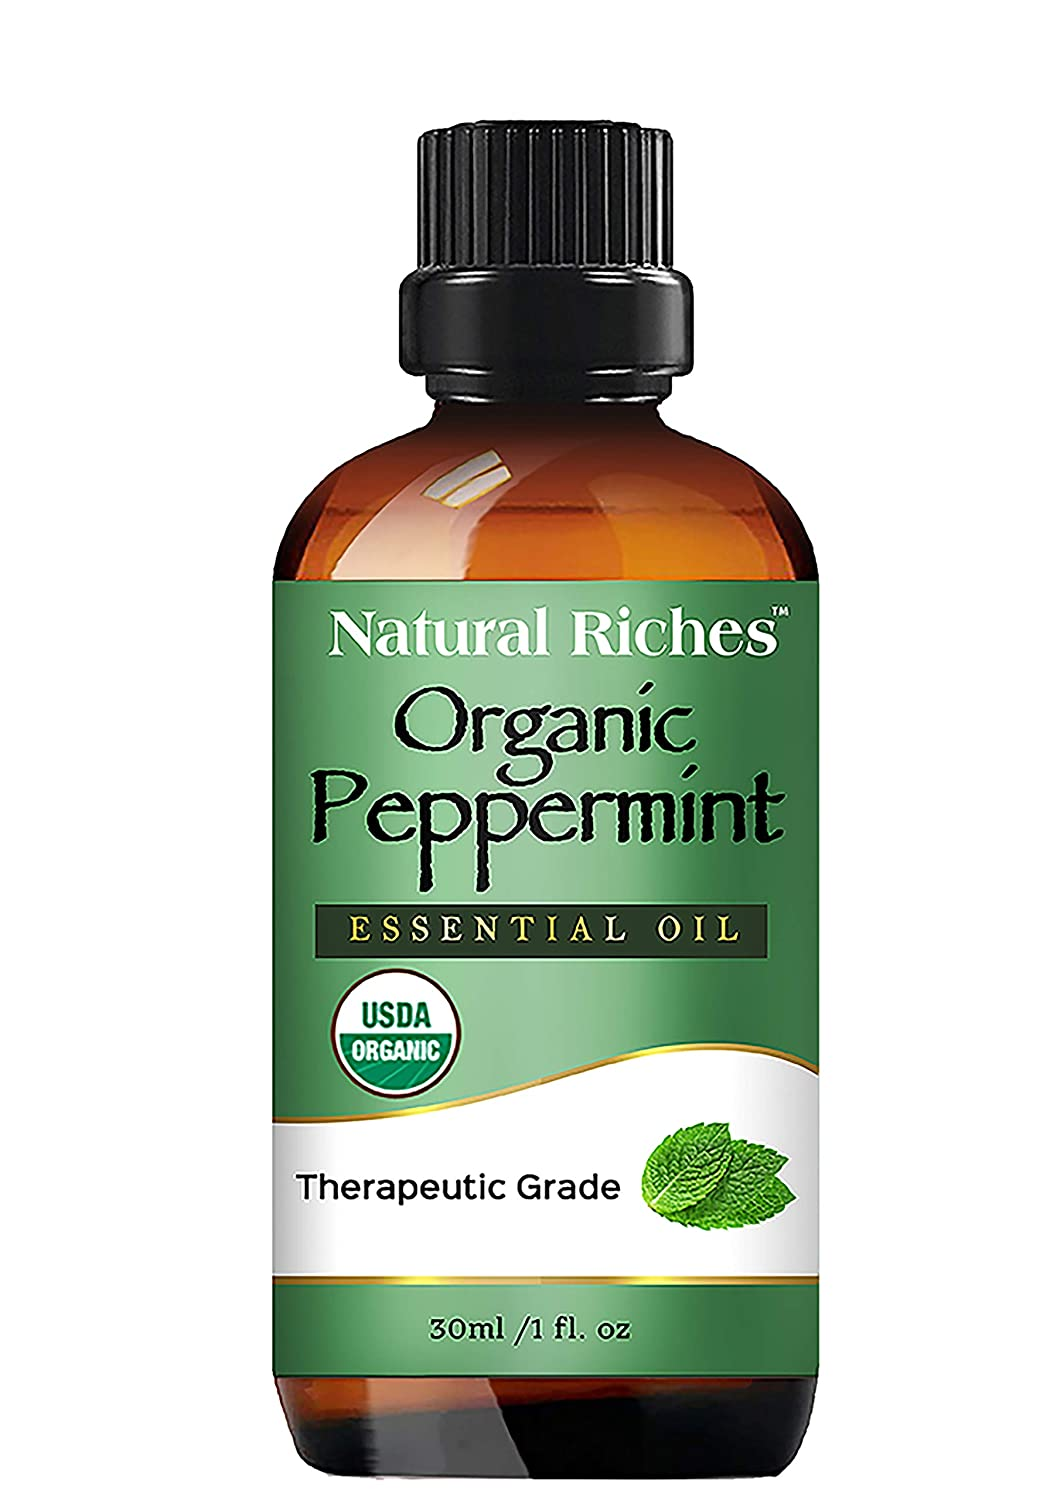 Natural Riches Organic Peppermint Oil, USDA Certified Organic, Undiluted, Natural Peppermint Essential Oil Aromatherapy, Therapeutic Grade Mentha Arvensis - Cooling Smell with Fresh Mint Oil & Menthol